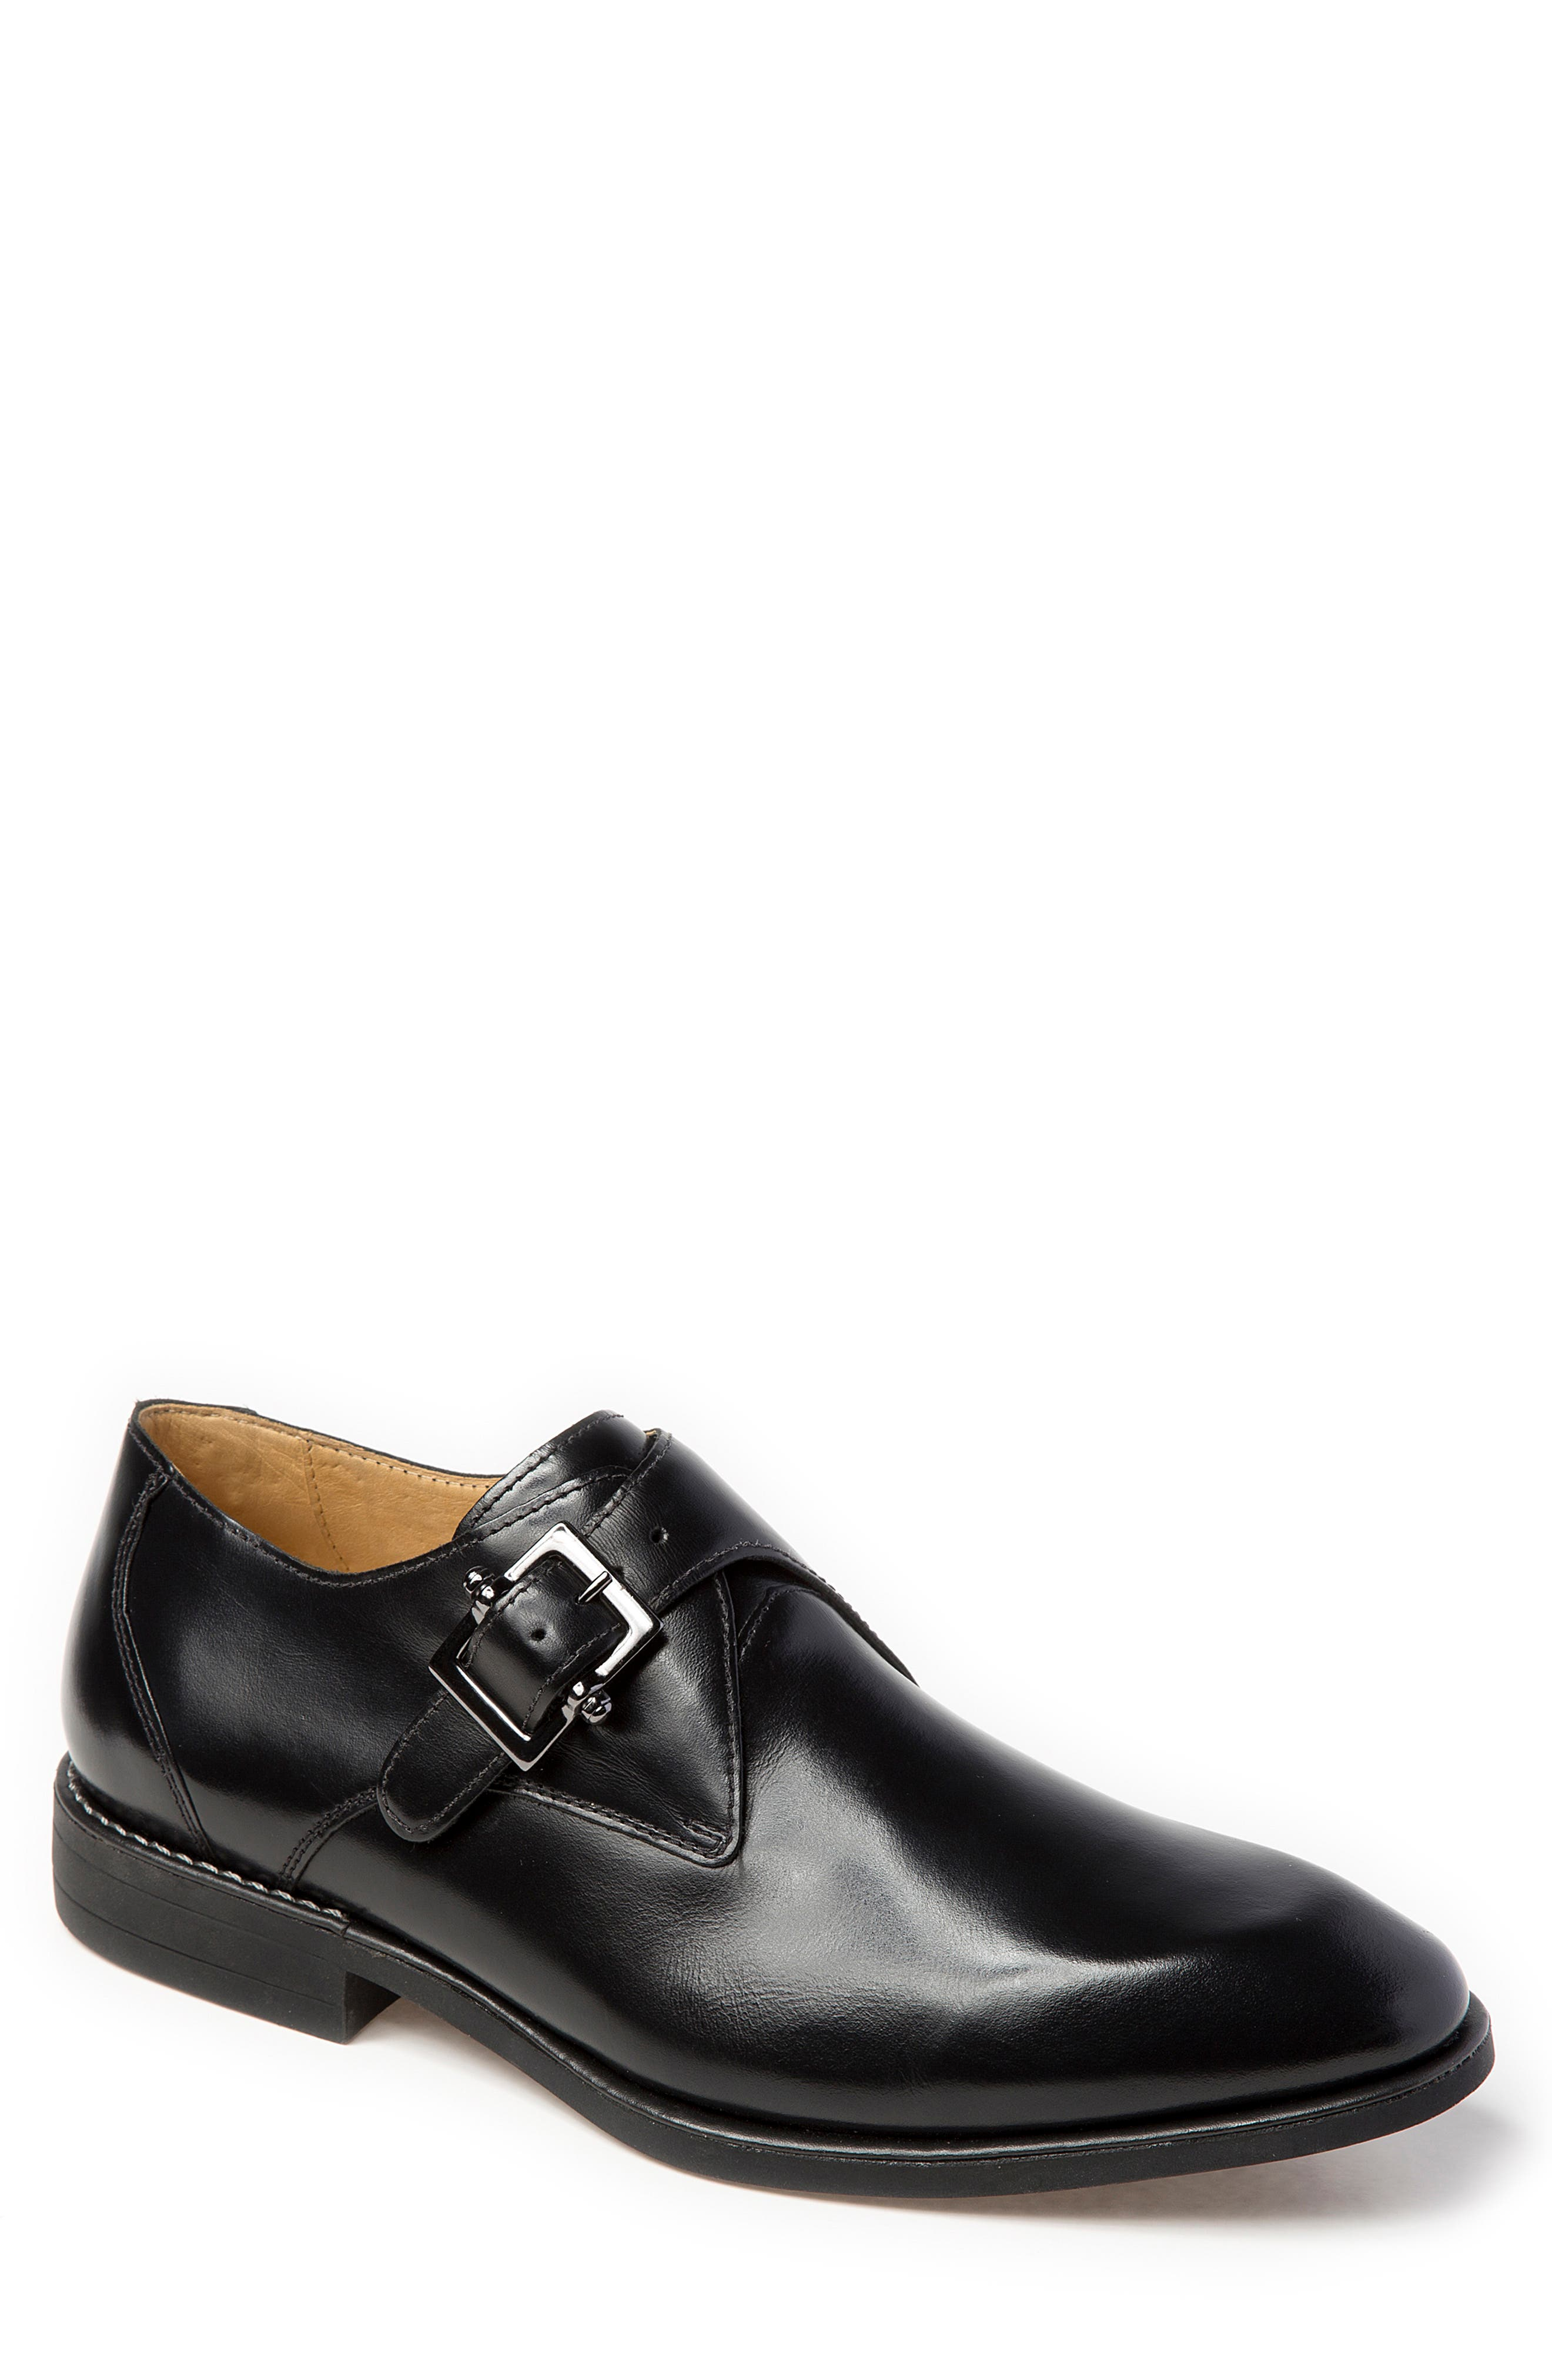 Wendell Single Buckle Monk Shoe,                         Main,                         color, BLACK LEATHER